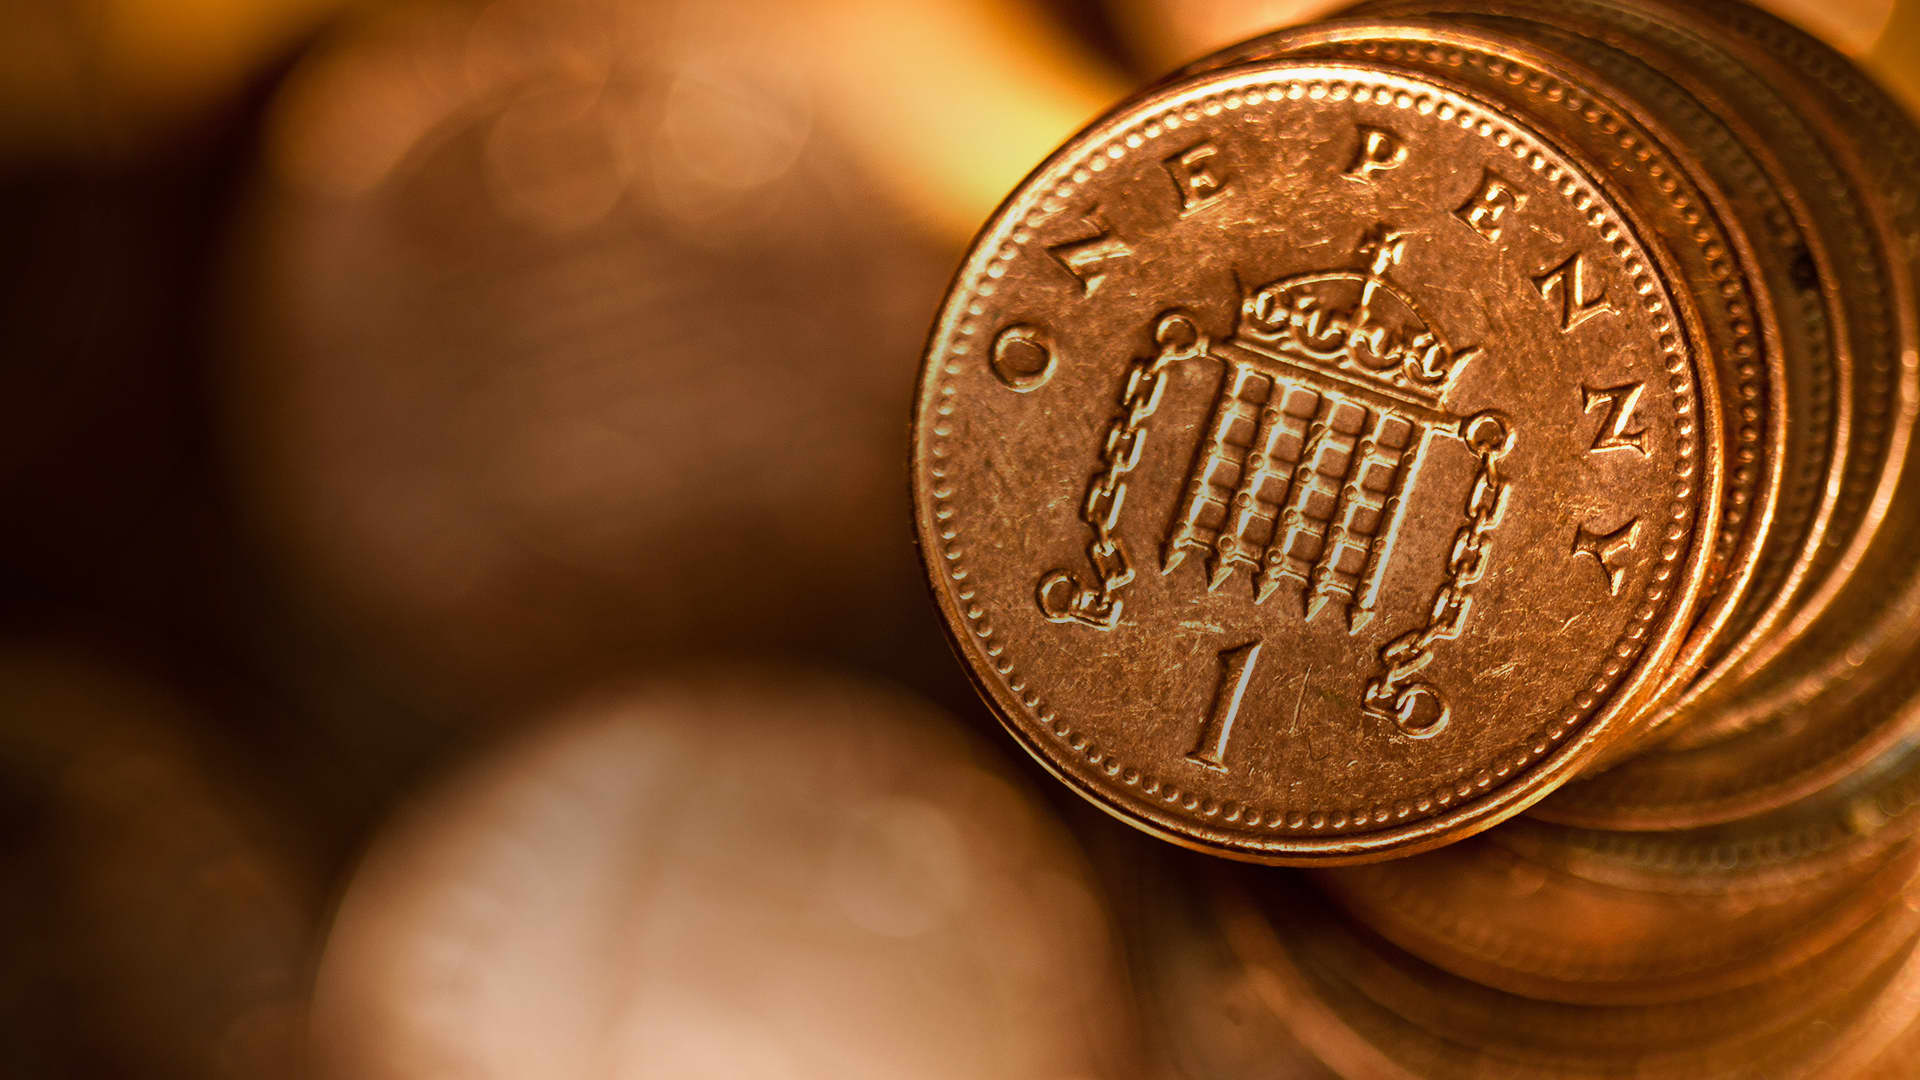 These valuable pennies are worth up to $200,000—and they might be in your pocket